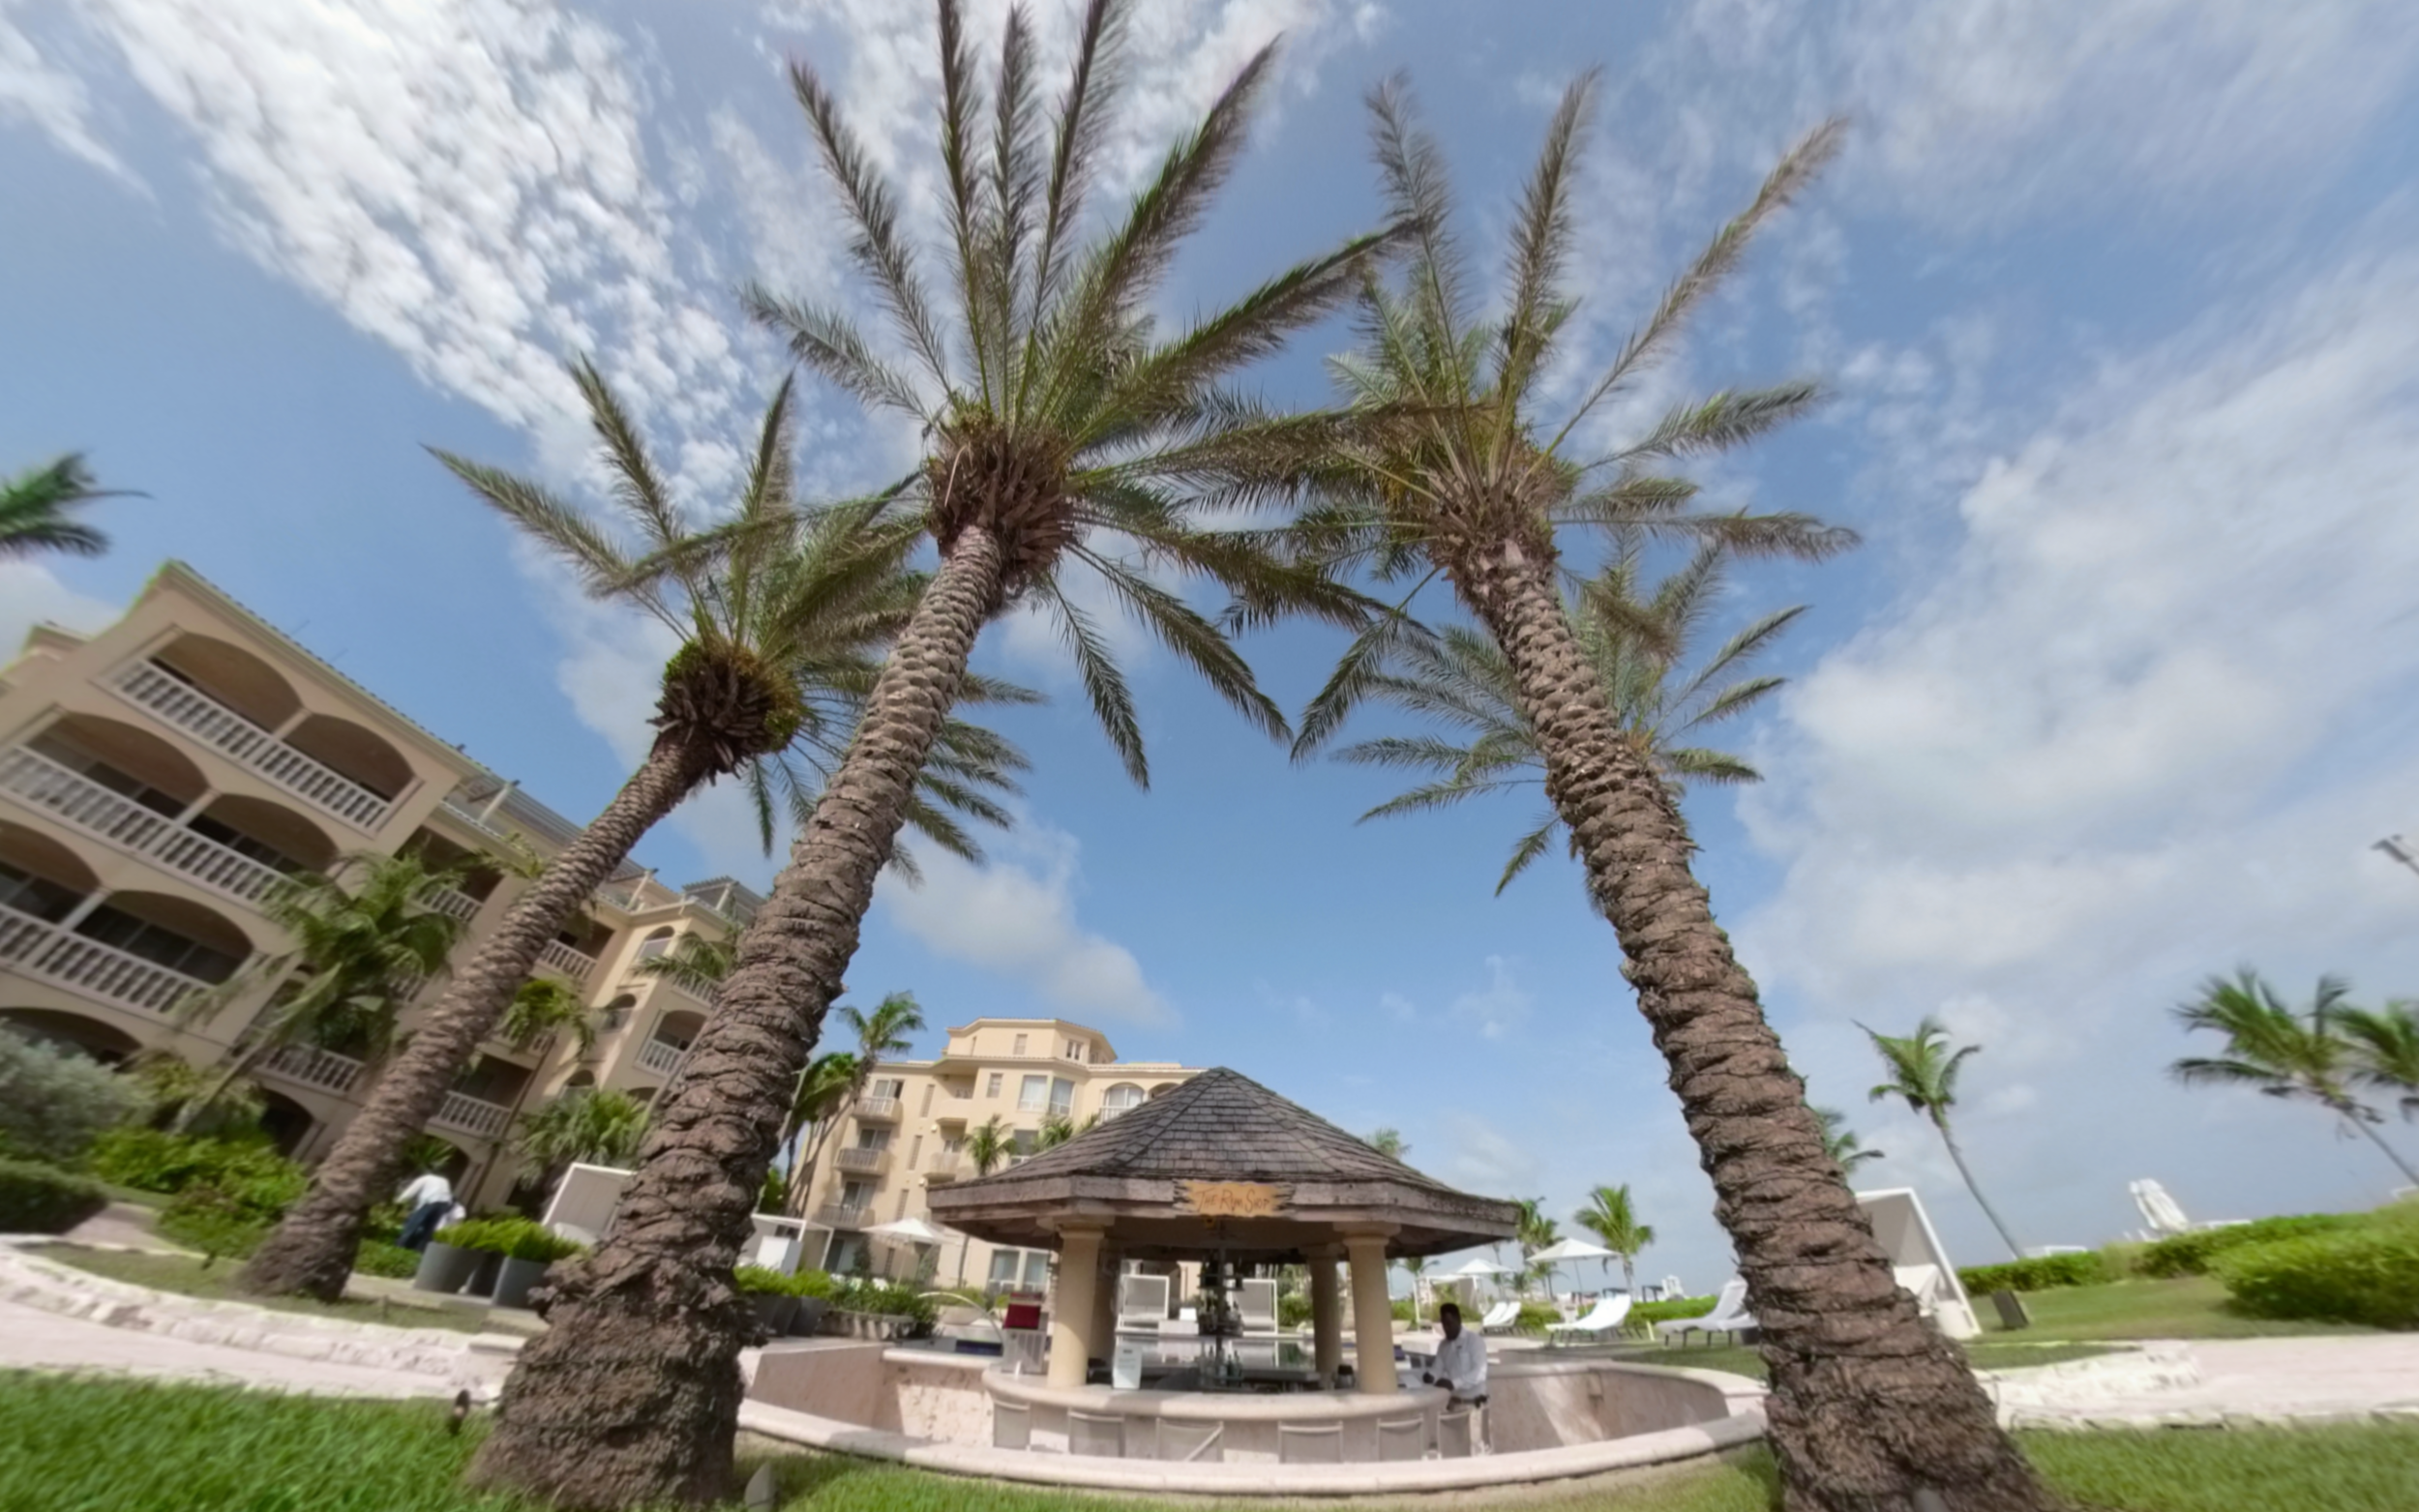 Grace Bay, Rum Shop, Turks and Caicos - Click for VR 360